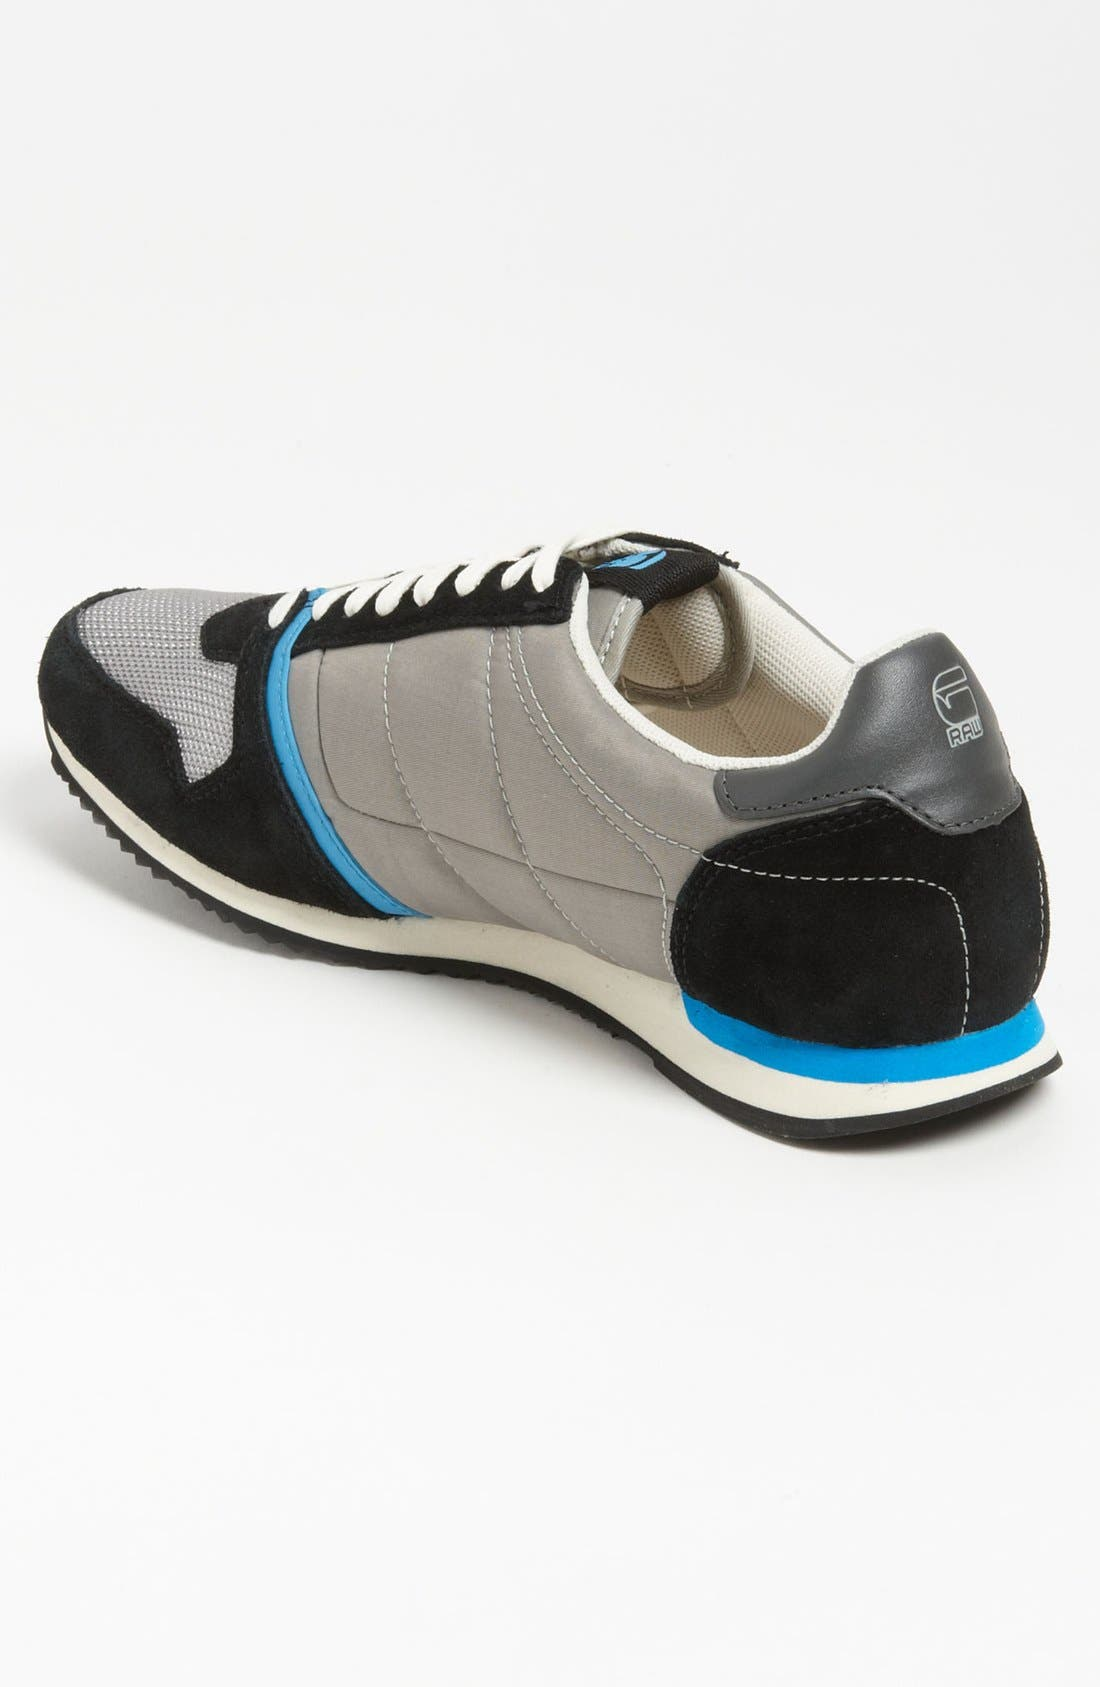 Alternate Image 2  - G-Star Raw 'Track Futura' Sneaker (Men)